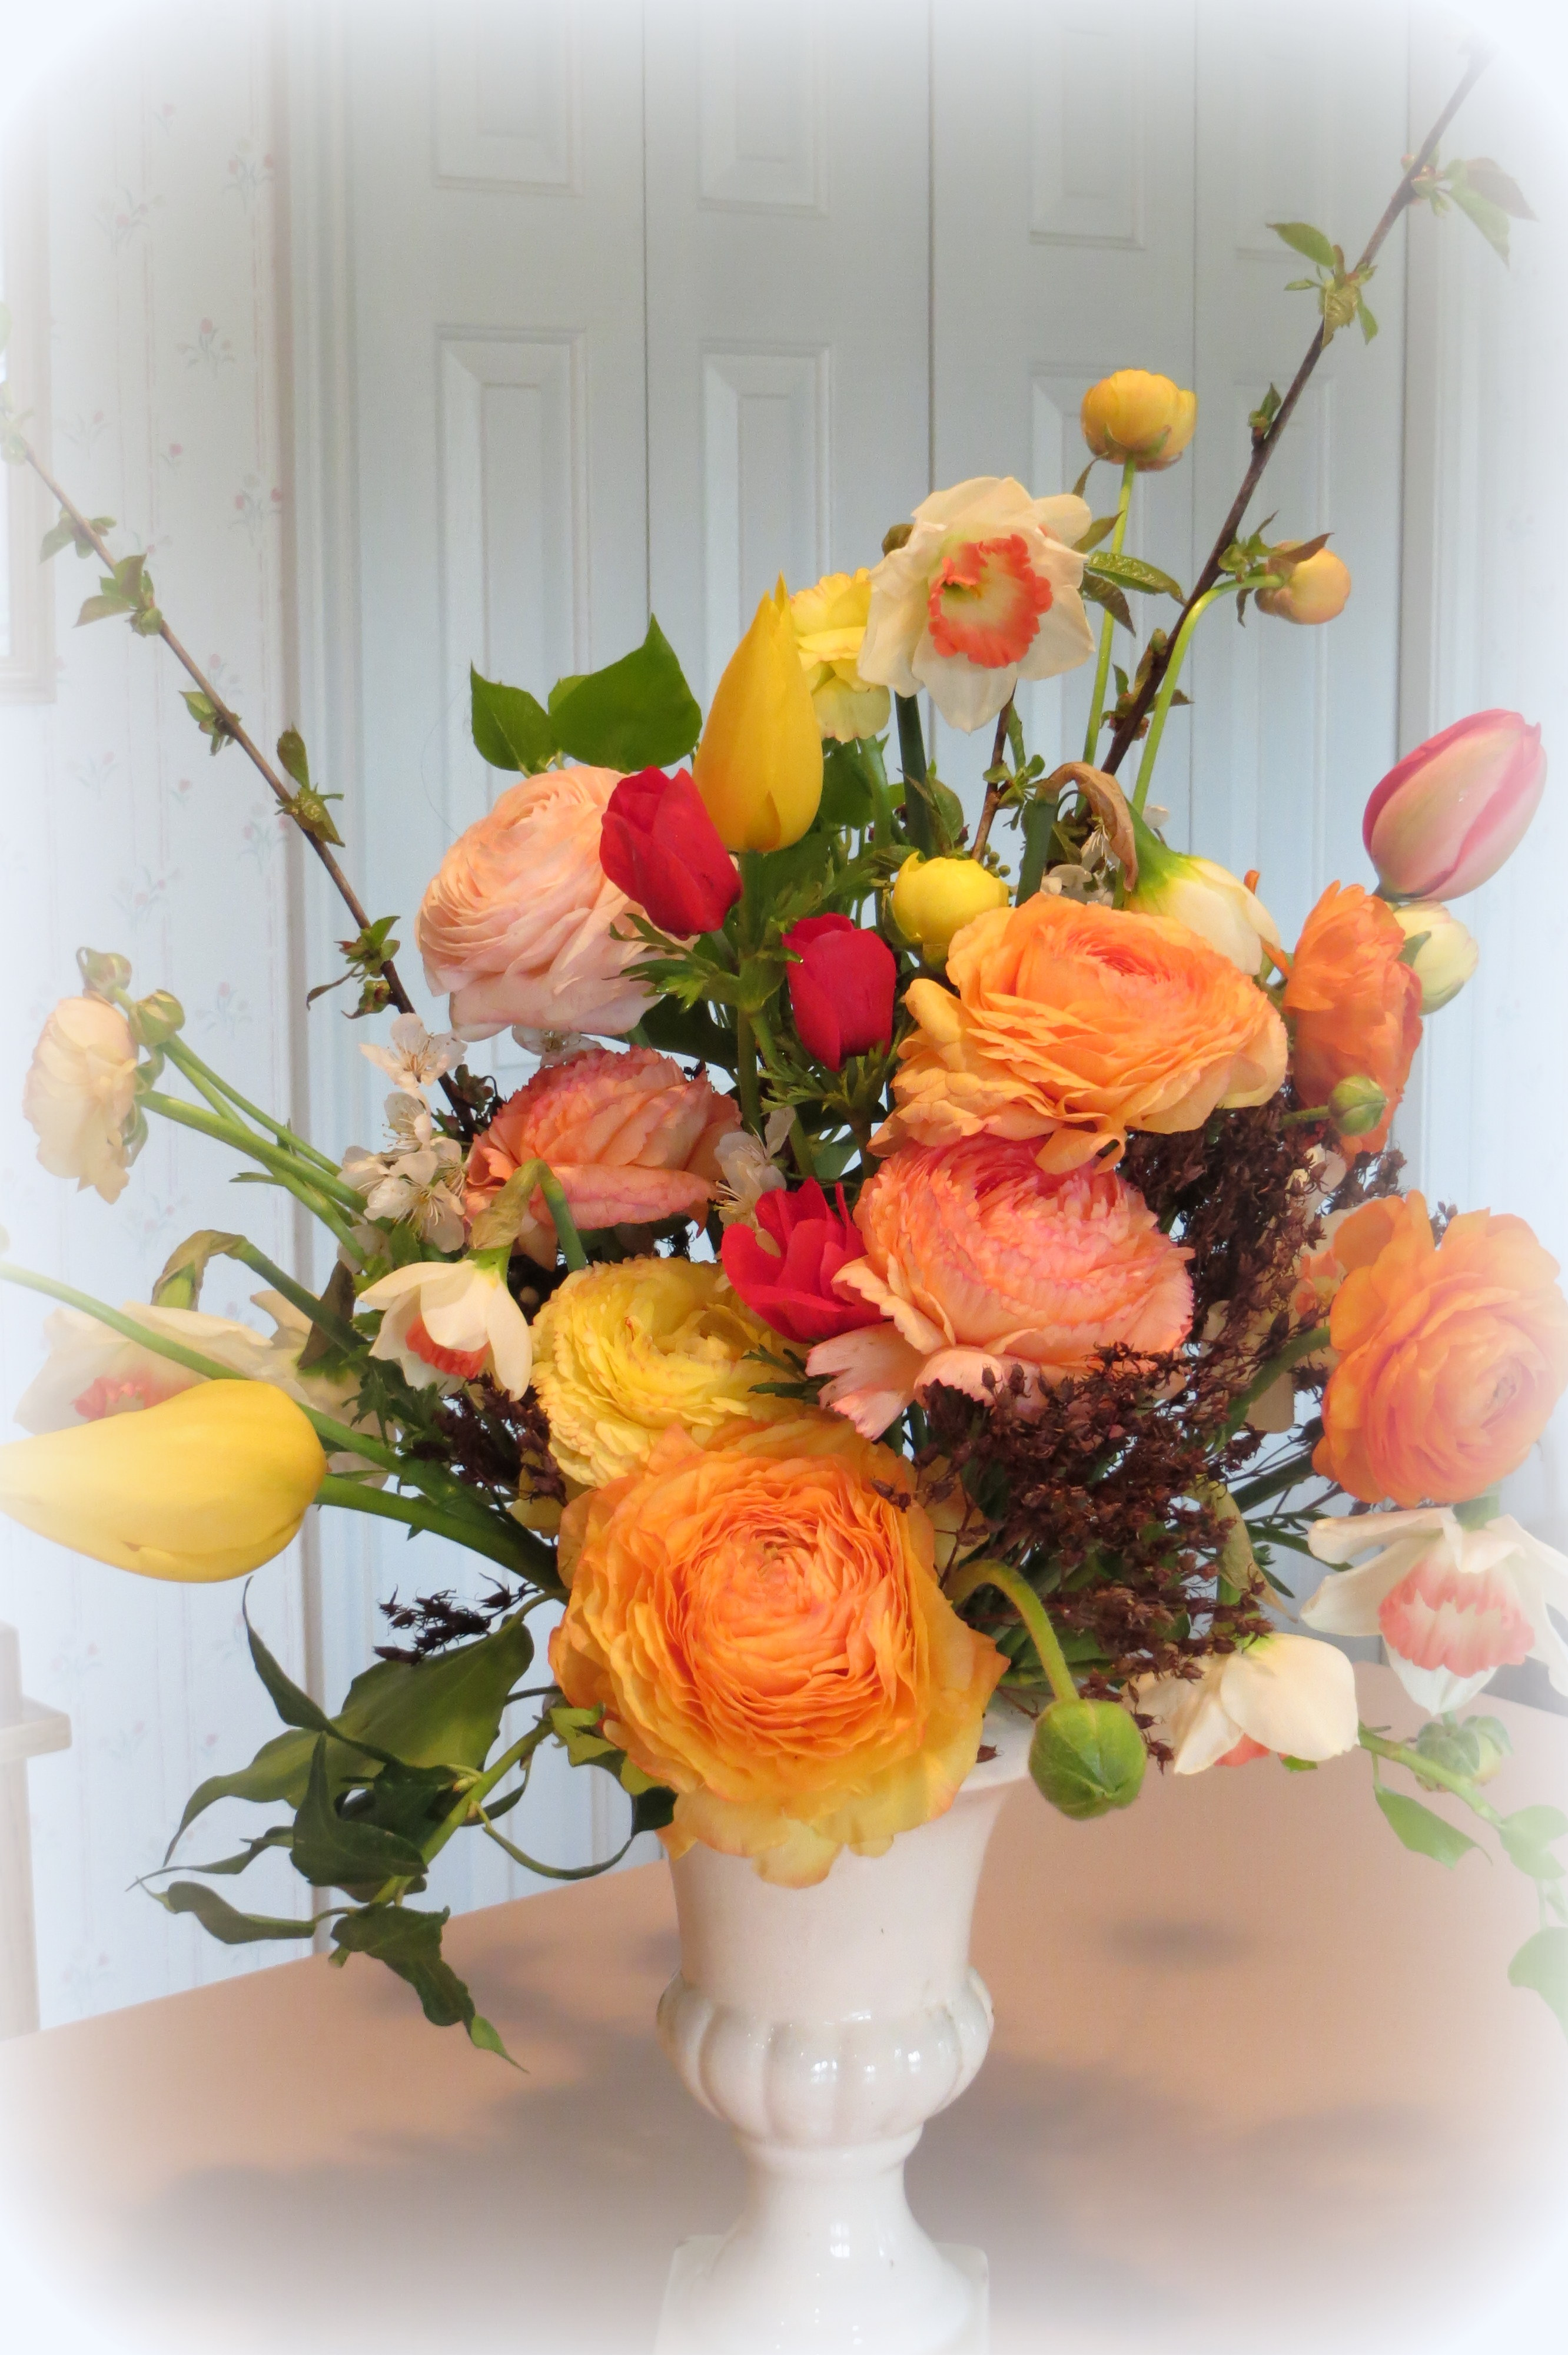 Birthday gift of flowers welcome to bare mtn farm birthday gift of flowers izmirmasajfo